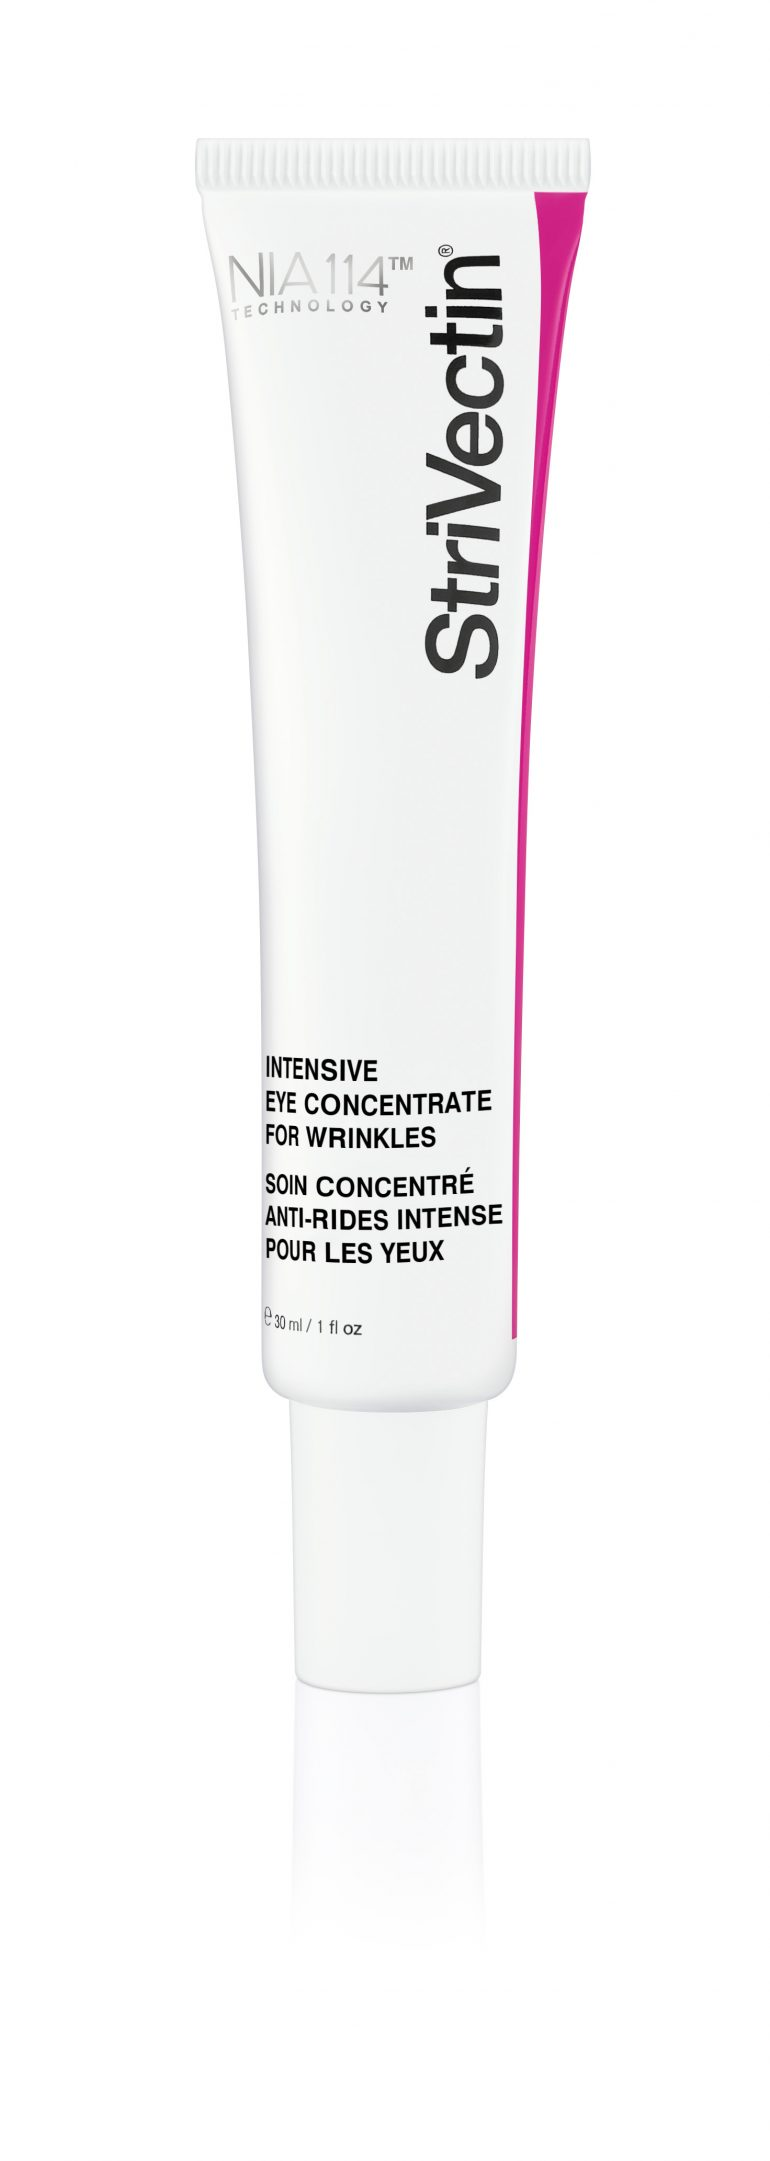 INTENSIVE EYE CONCENTRATE